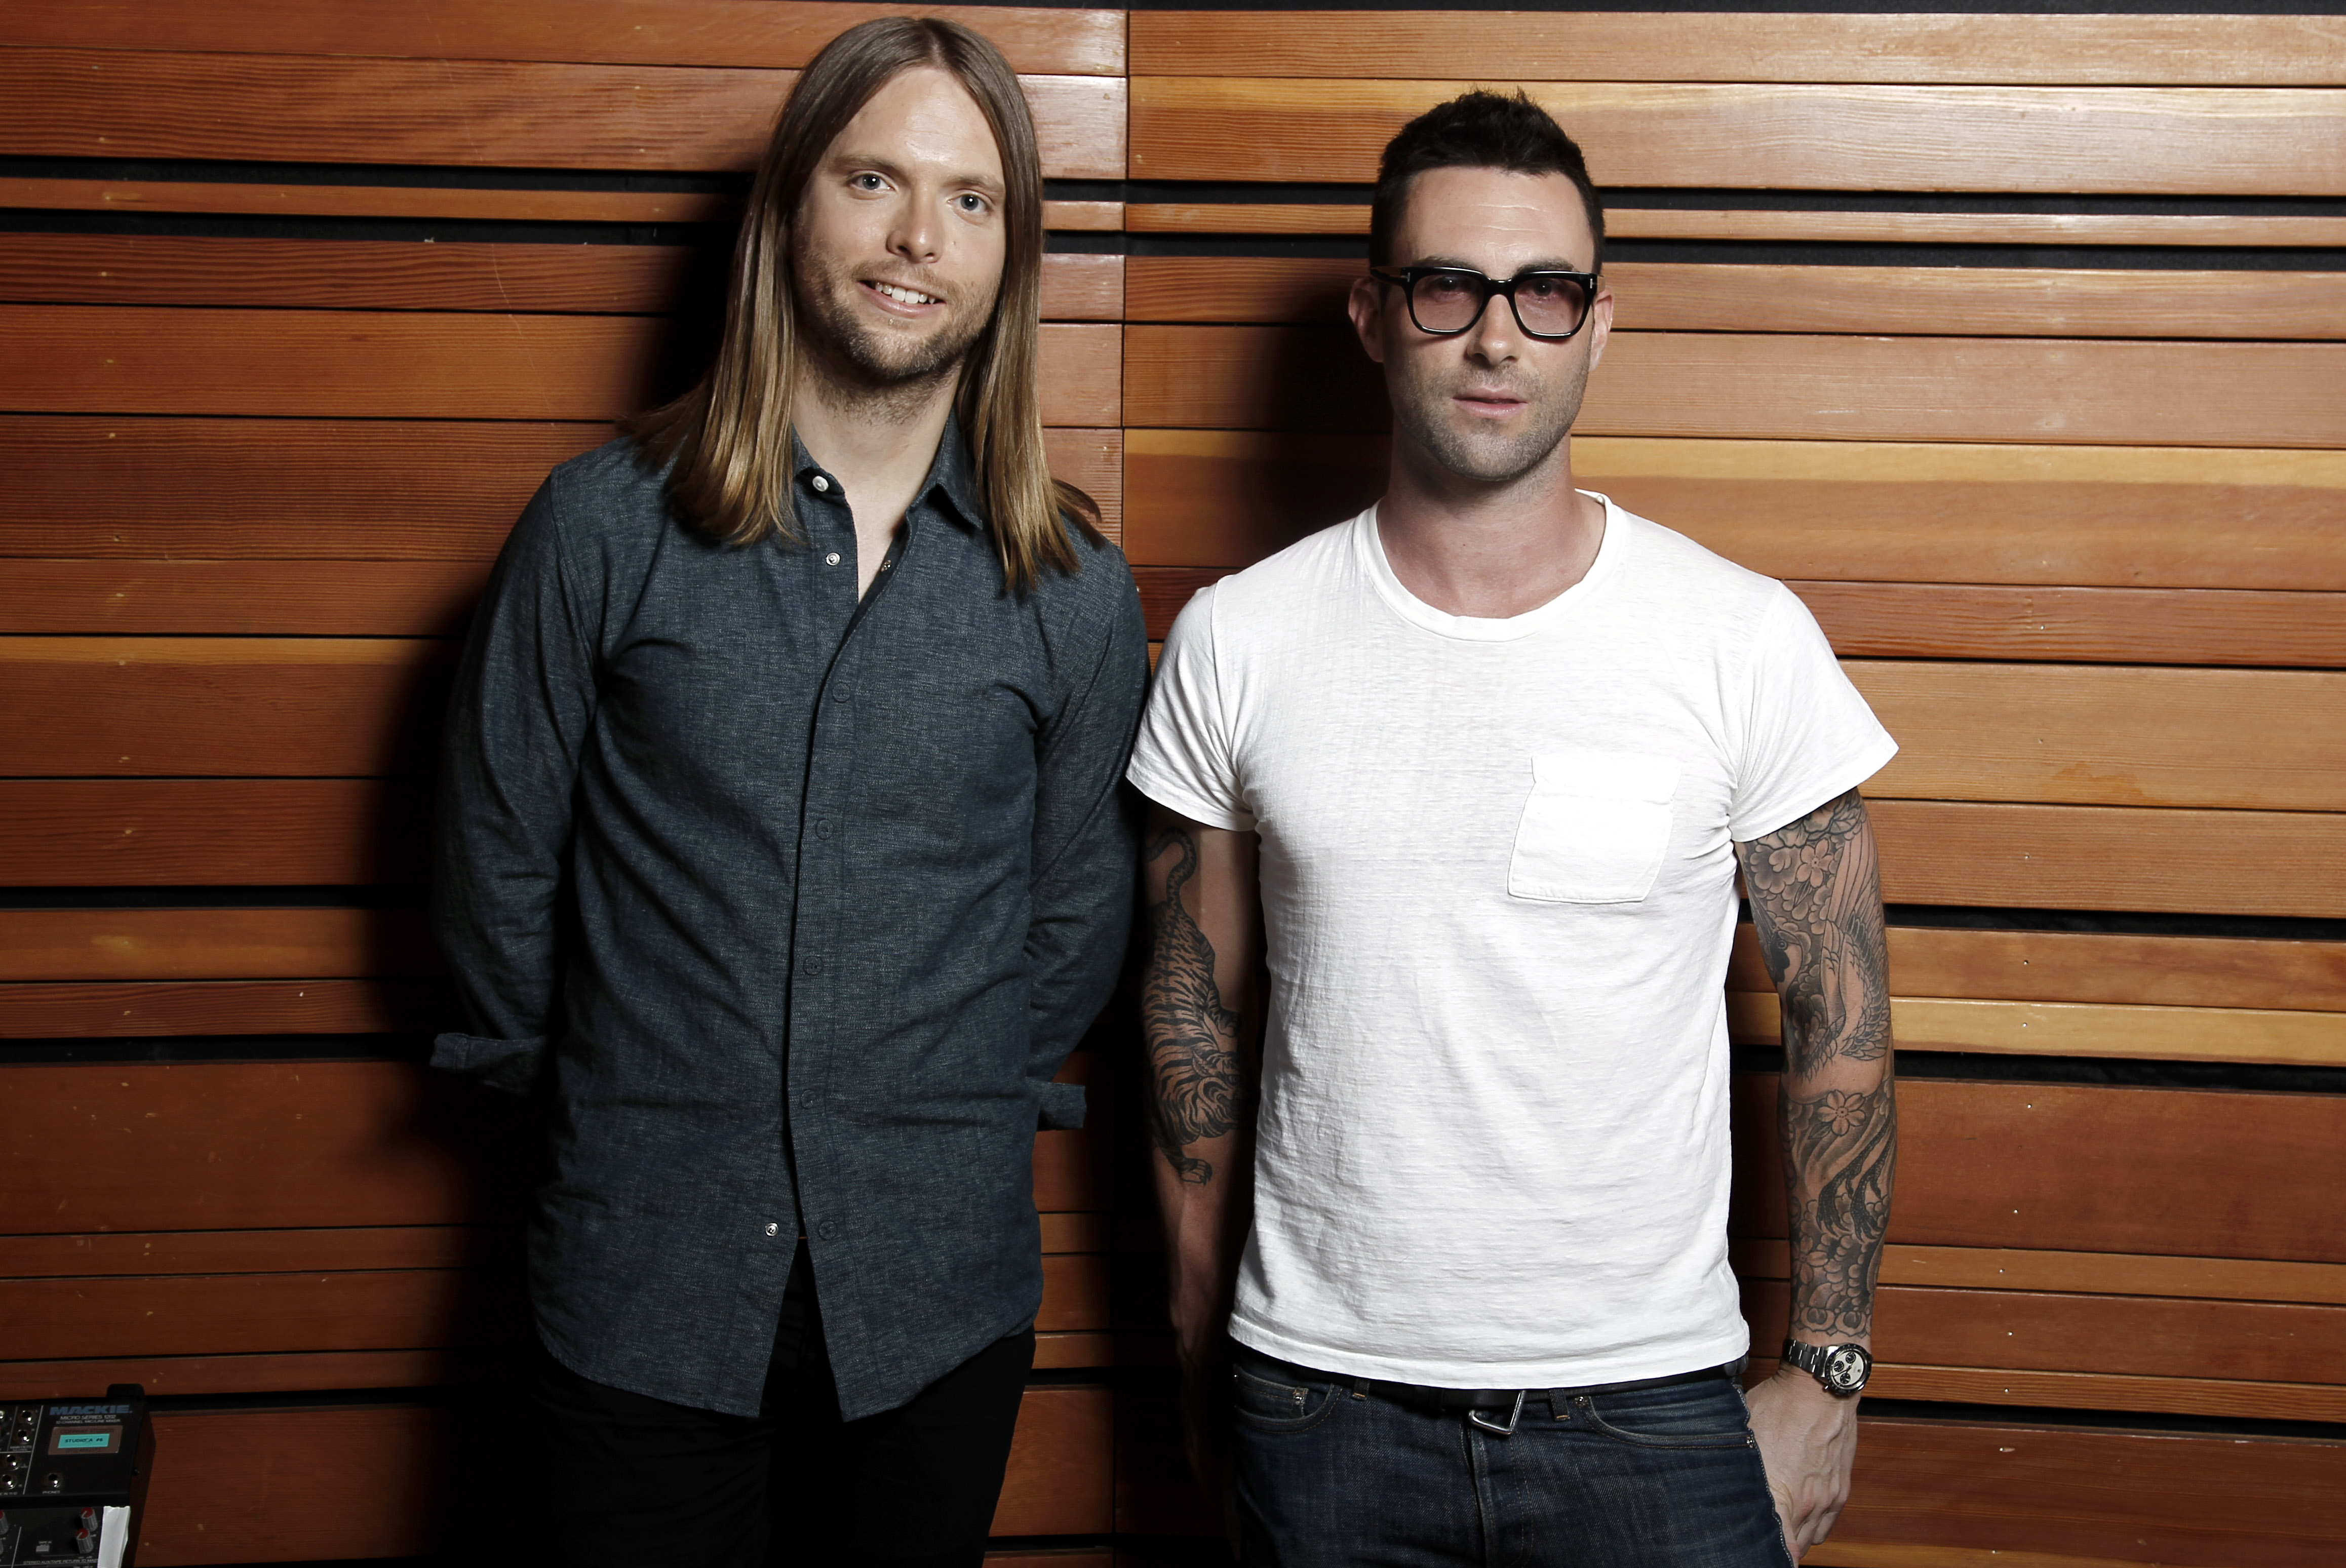 This May 22, 2012 photo shows Adam Levine, right, and James Valentine of the band Maroon 5, posing for a portrait in Los Angeles. The latest release by Maroon 5,